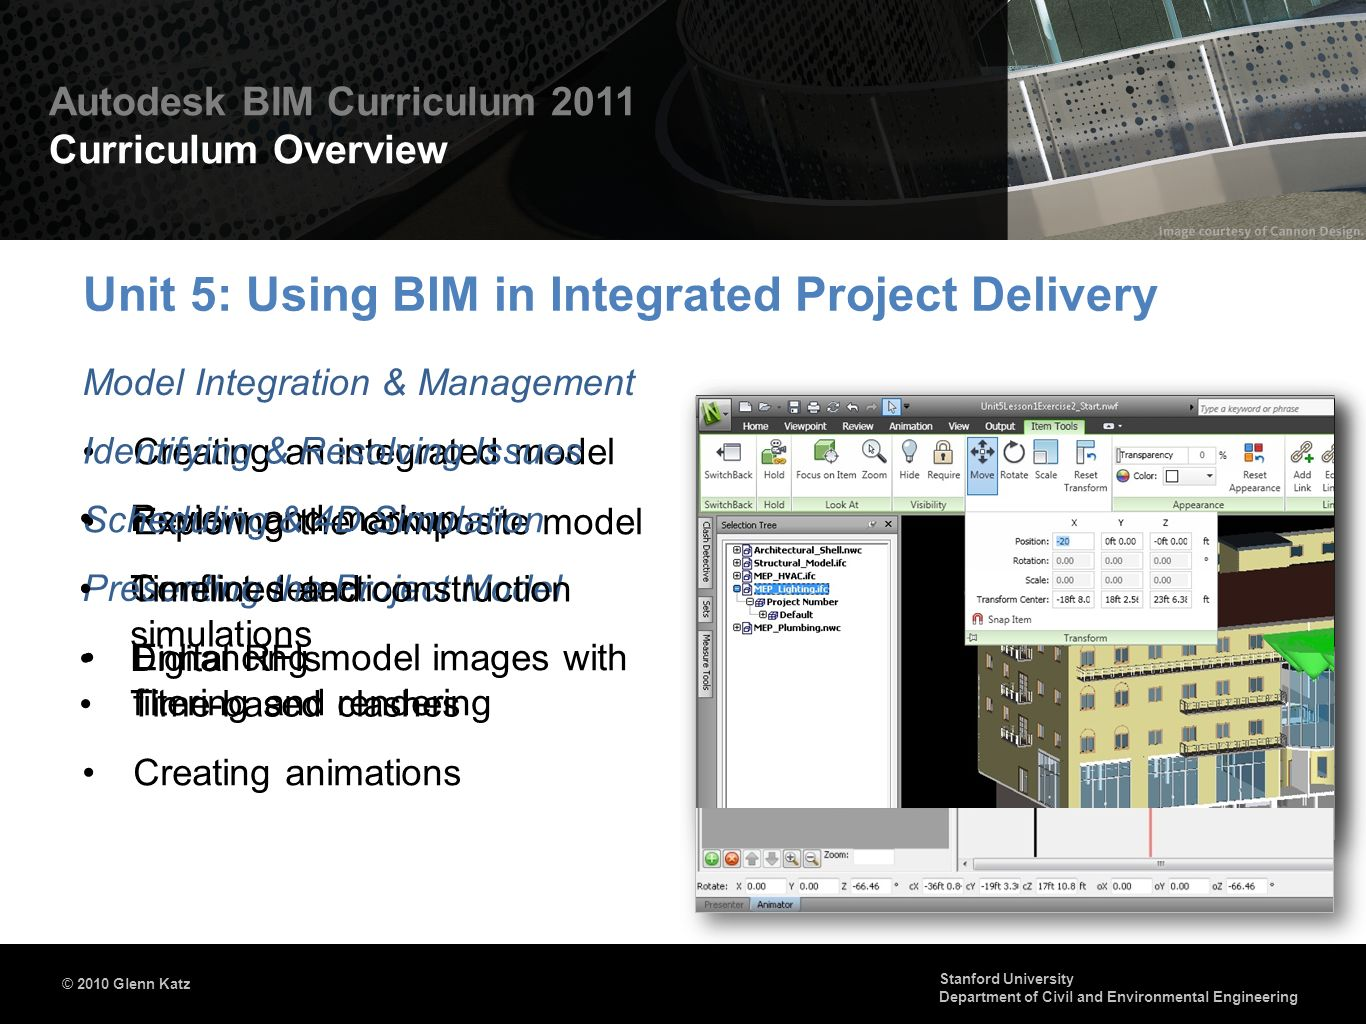 Unit 5: Using BIM in Integrated Project Delivery